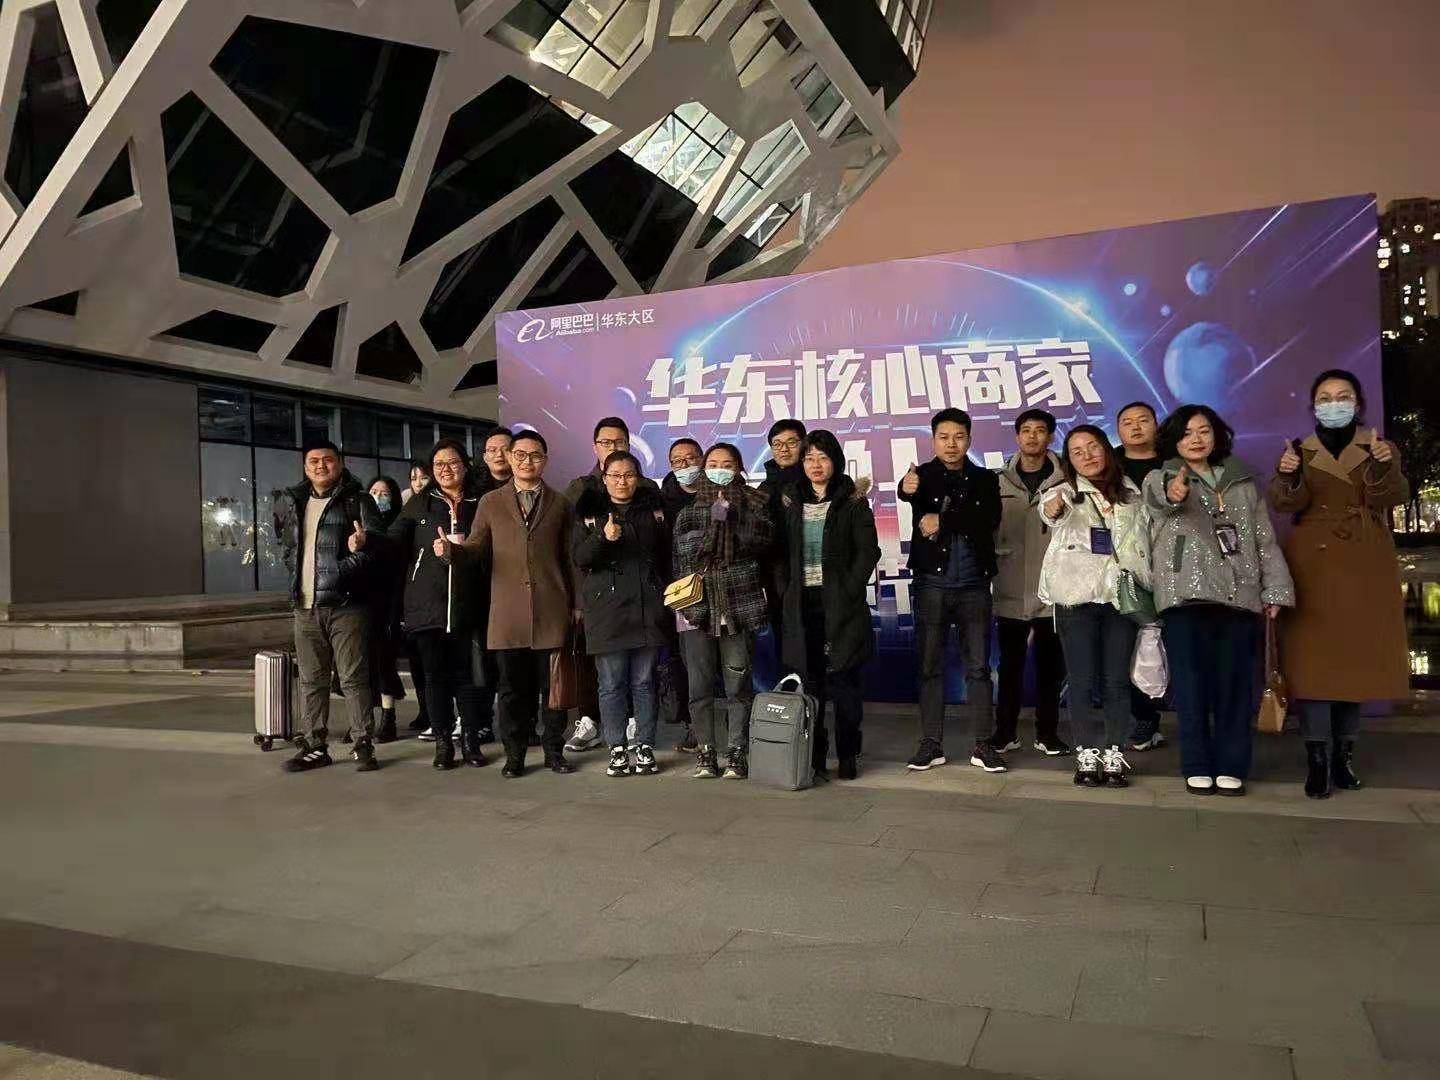 We participated in the Alibaba Core Merchant Training Camp last week